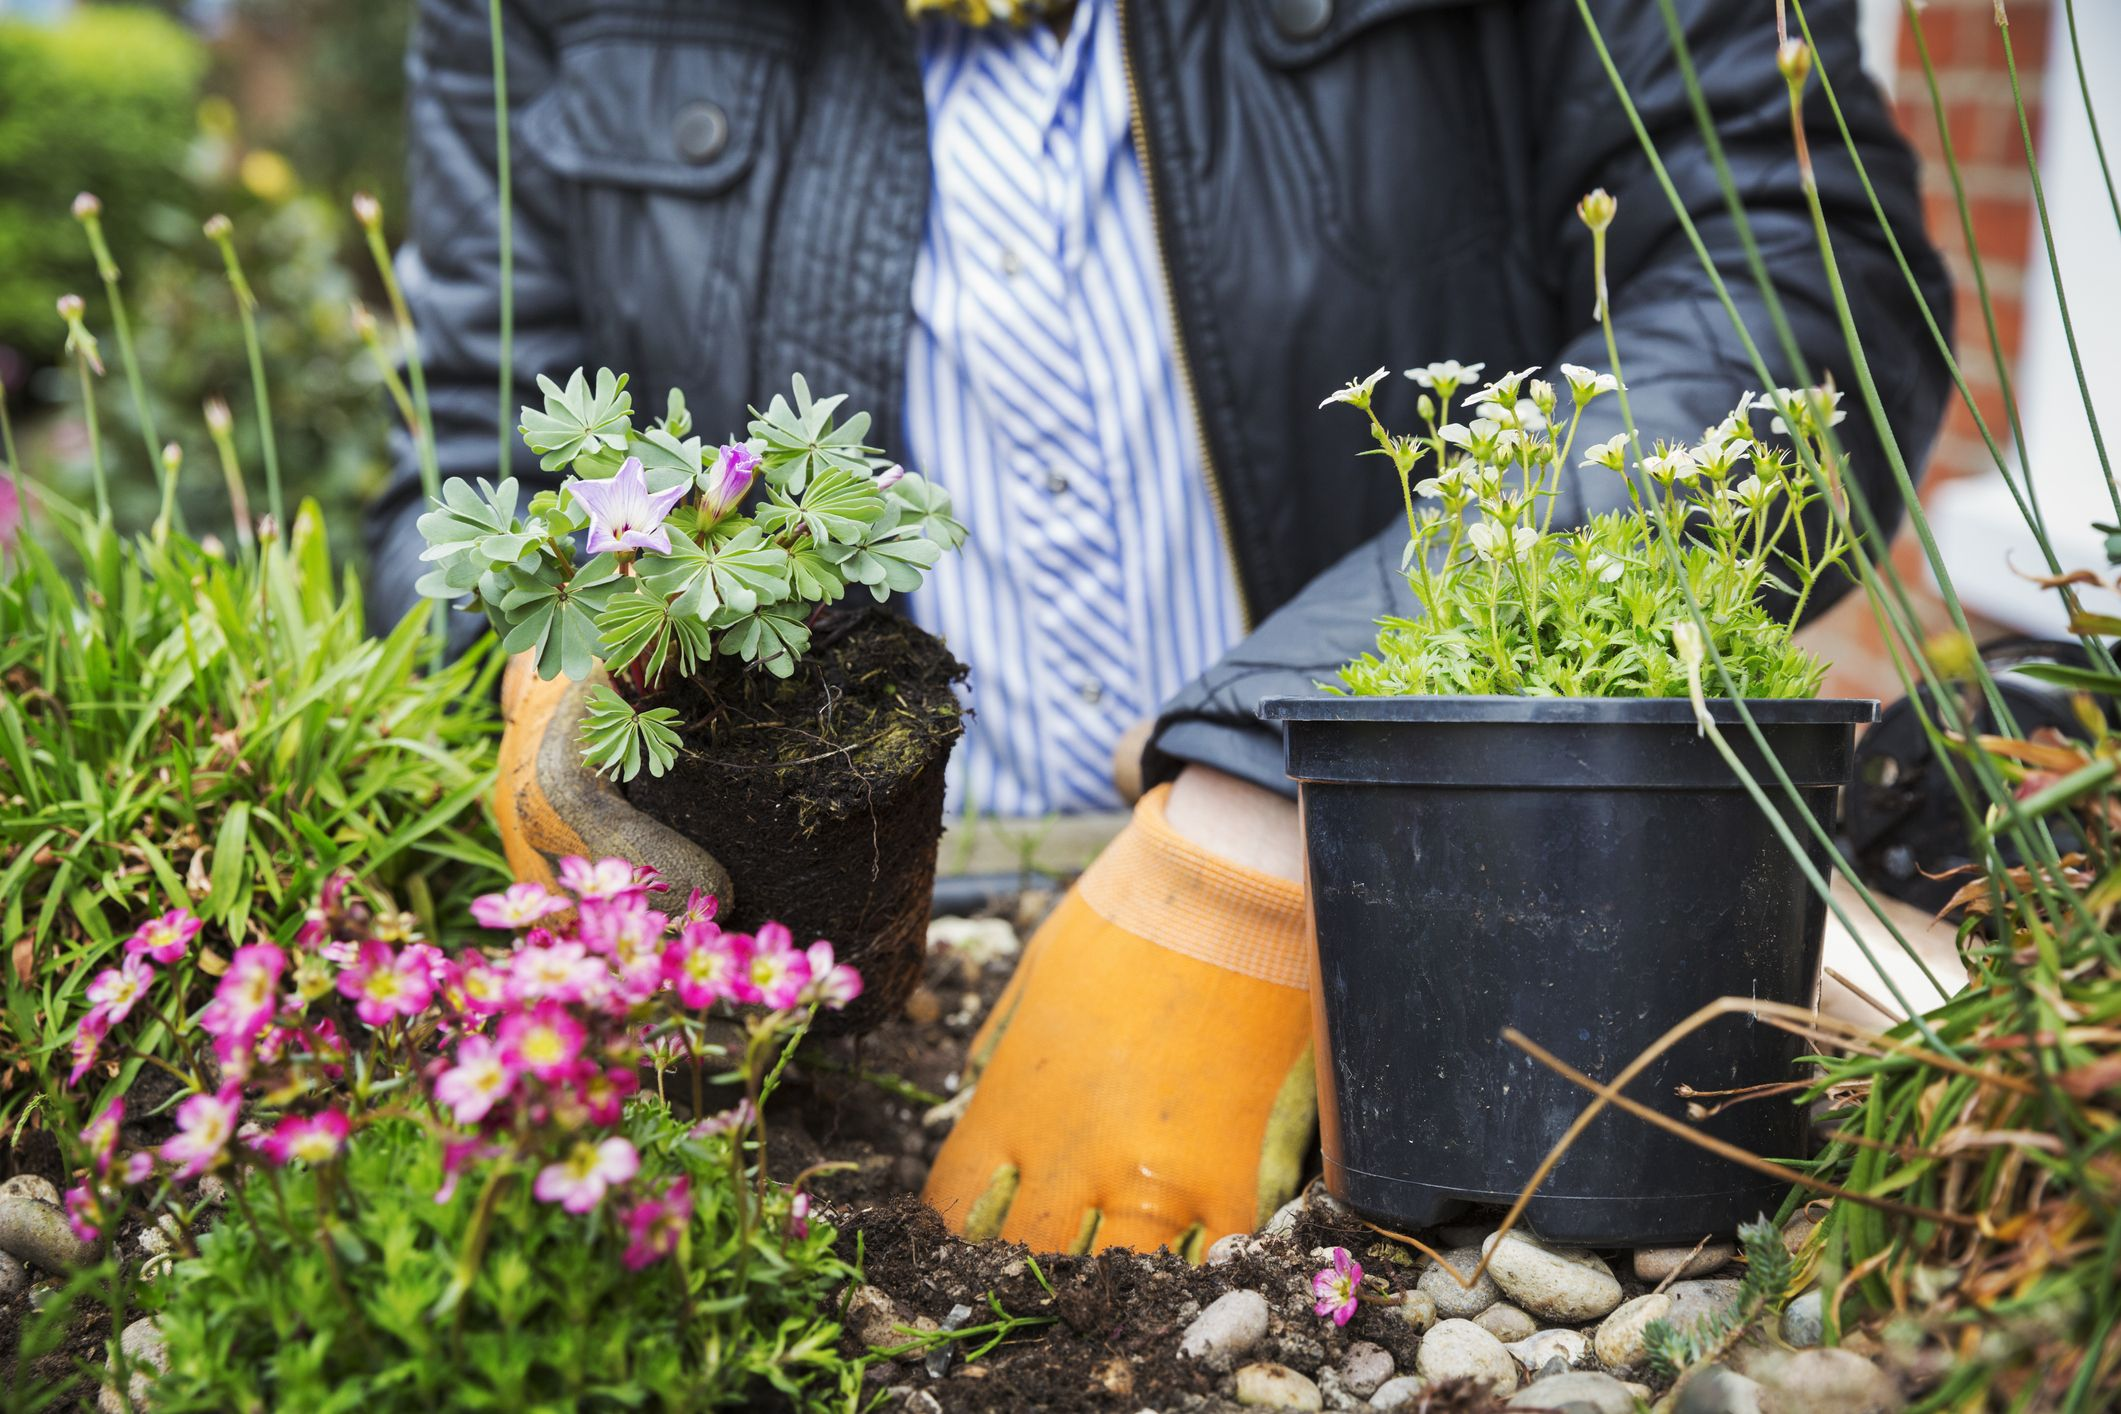 30 Minutes Is The Recommended Daily Allowance Rda For Gardening